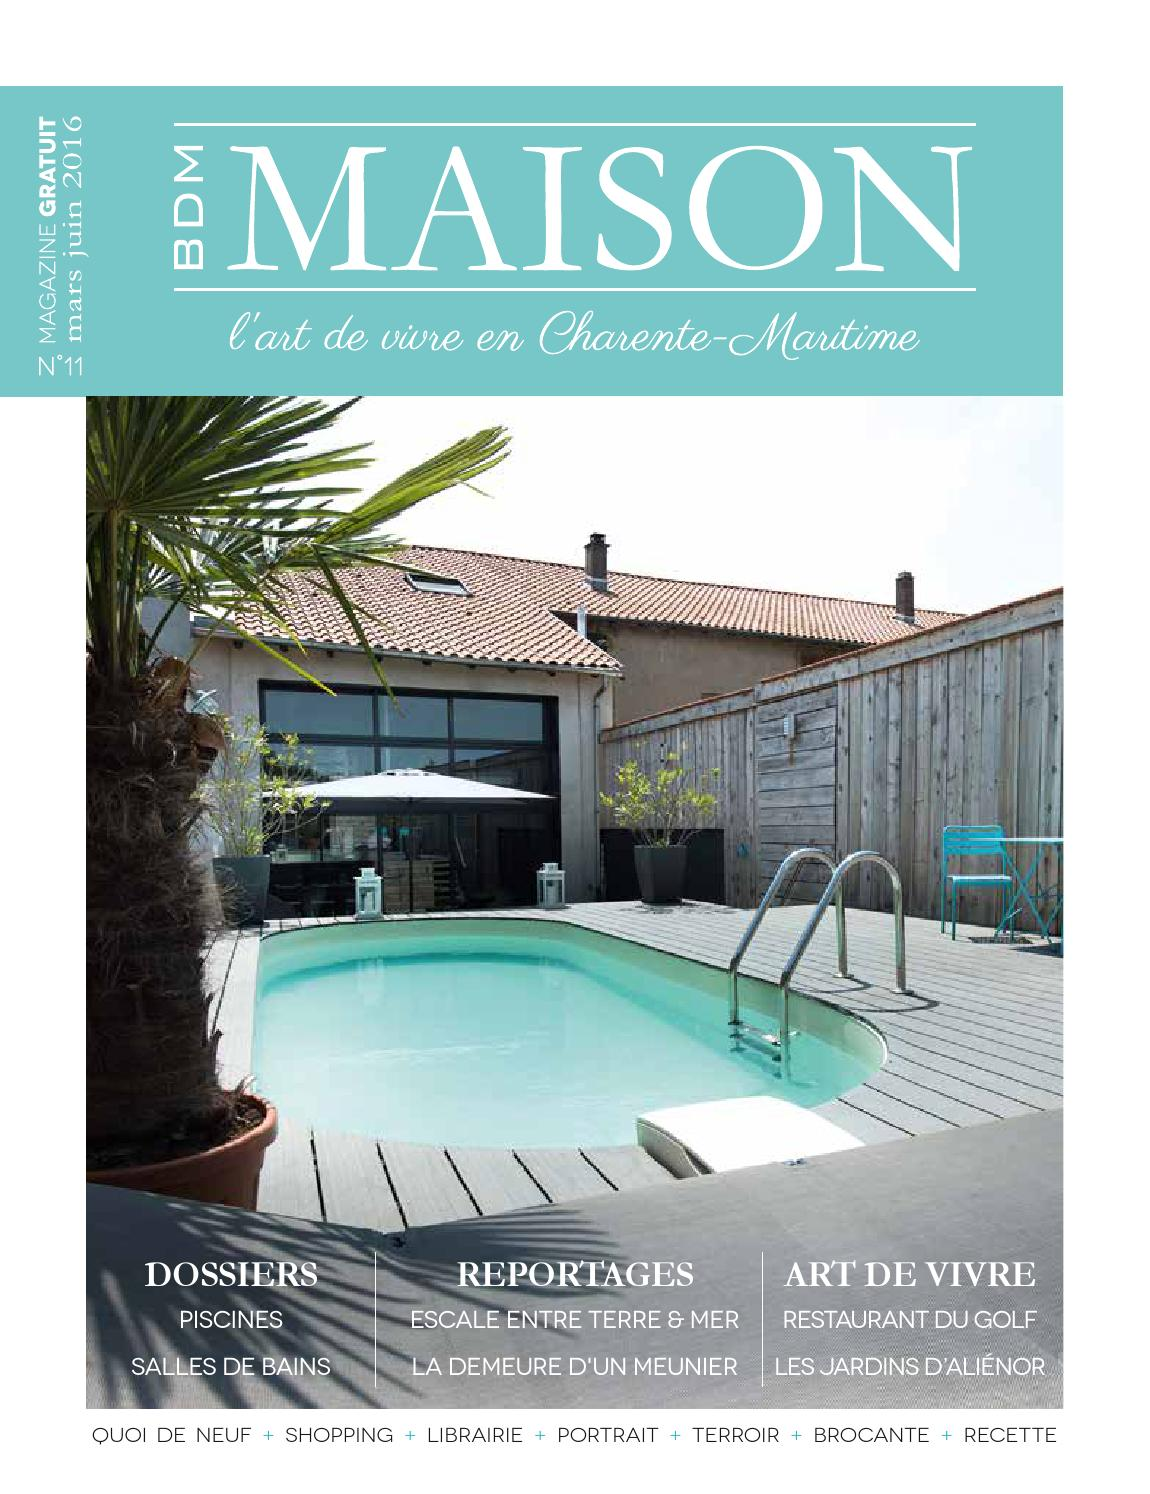 bdm maison l 39 art de vivre en charente maritime n 11 by bdm maison issuu. Black Bedroom Furniture Sets. Home Design Ideas